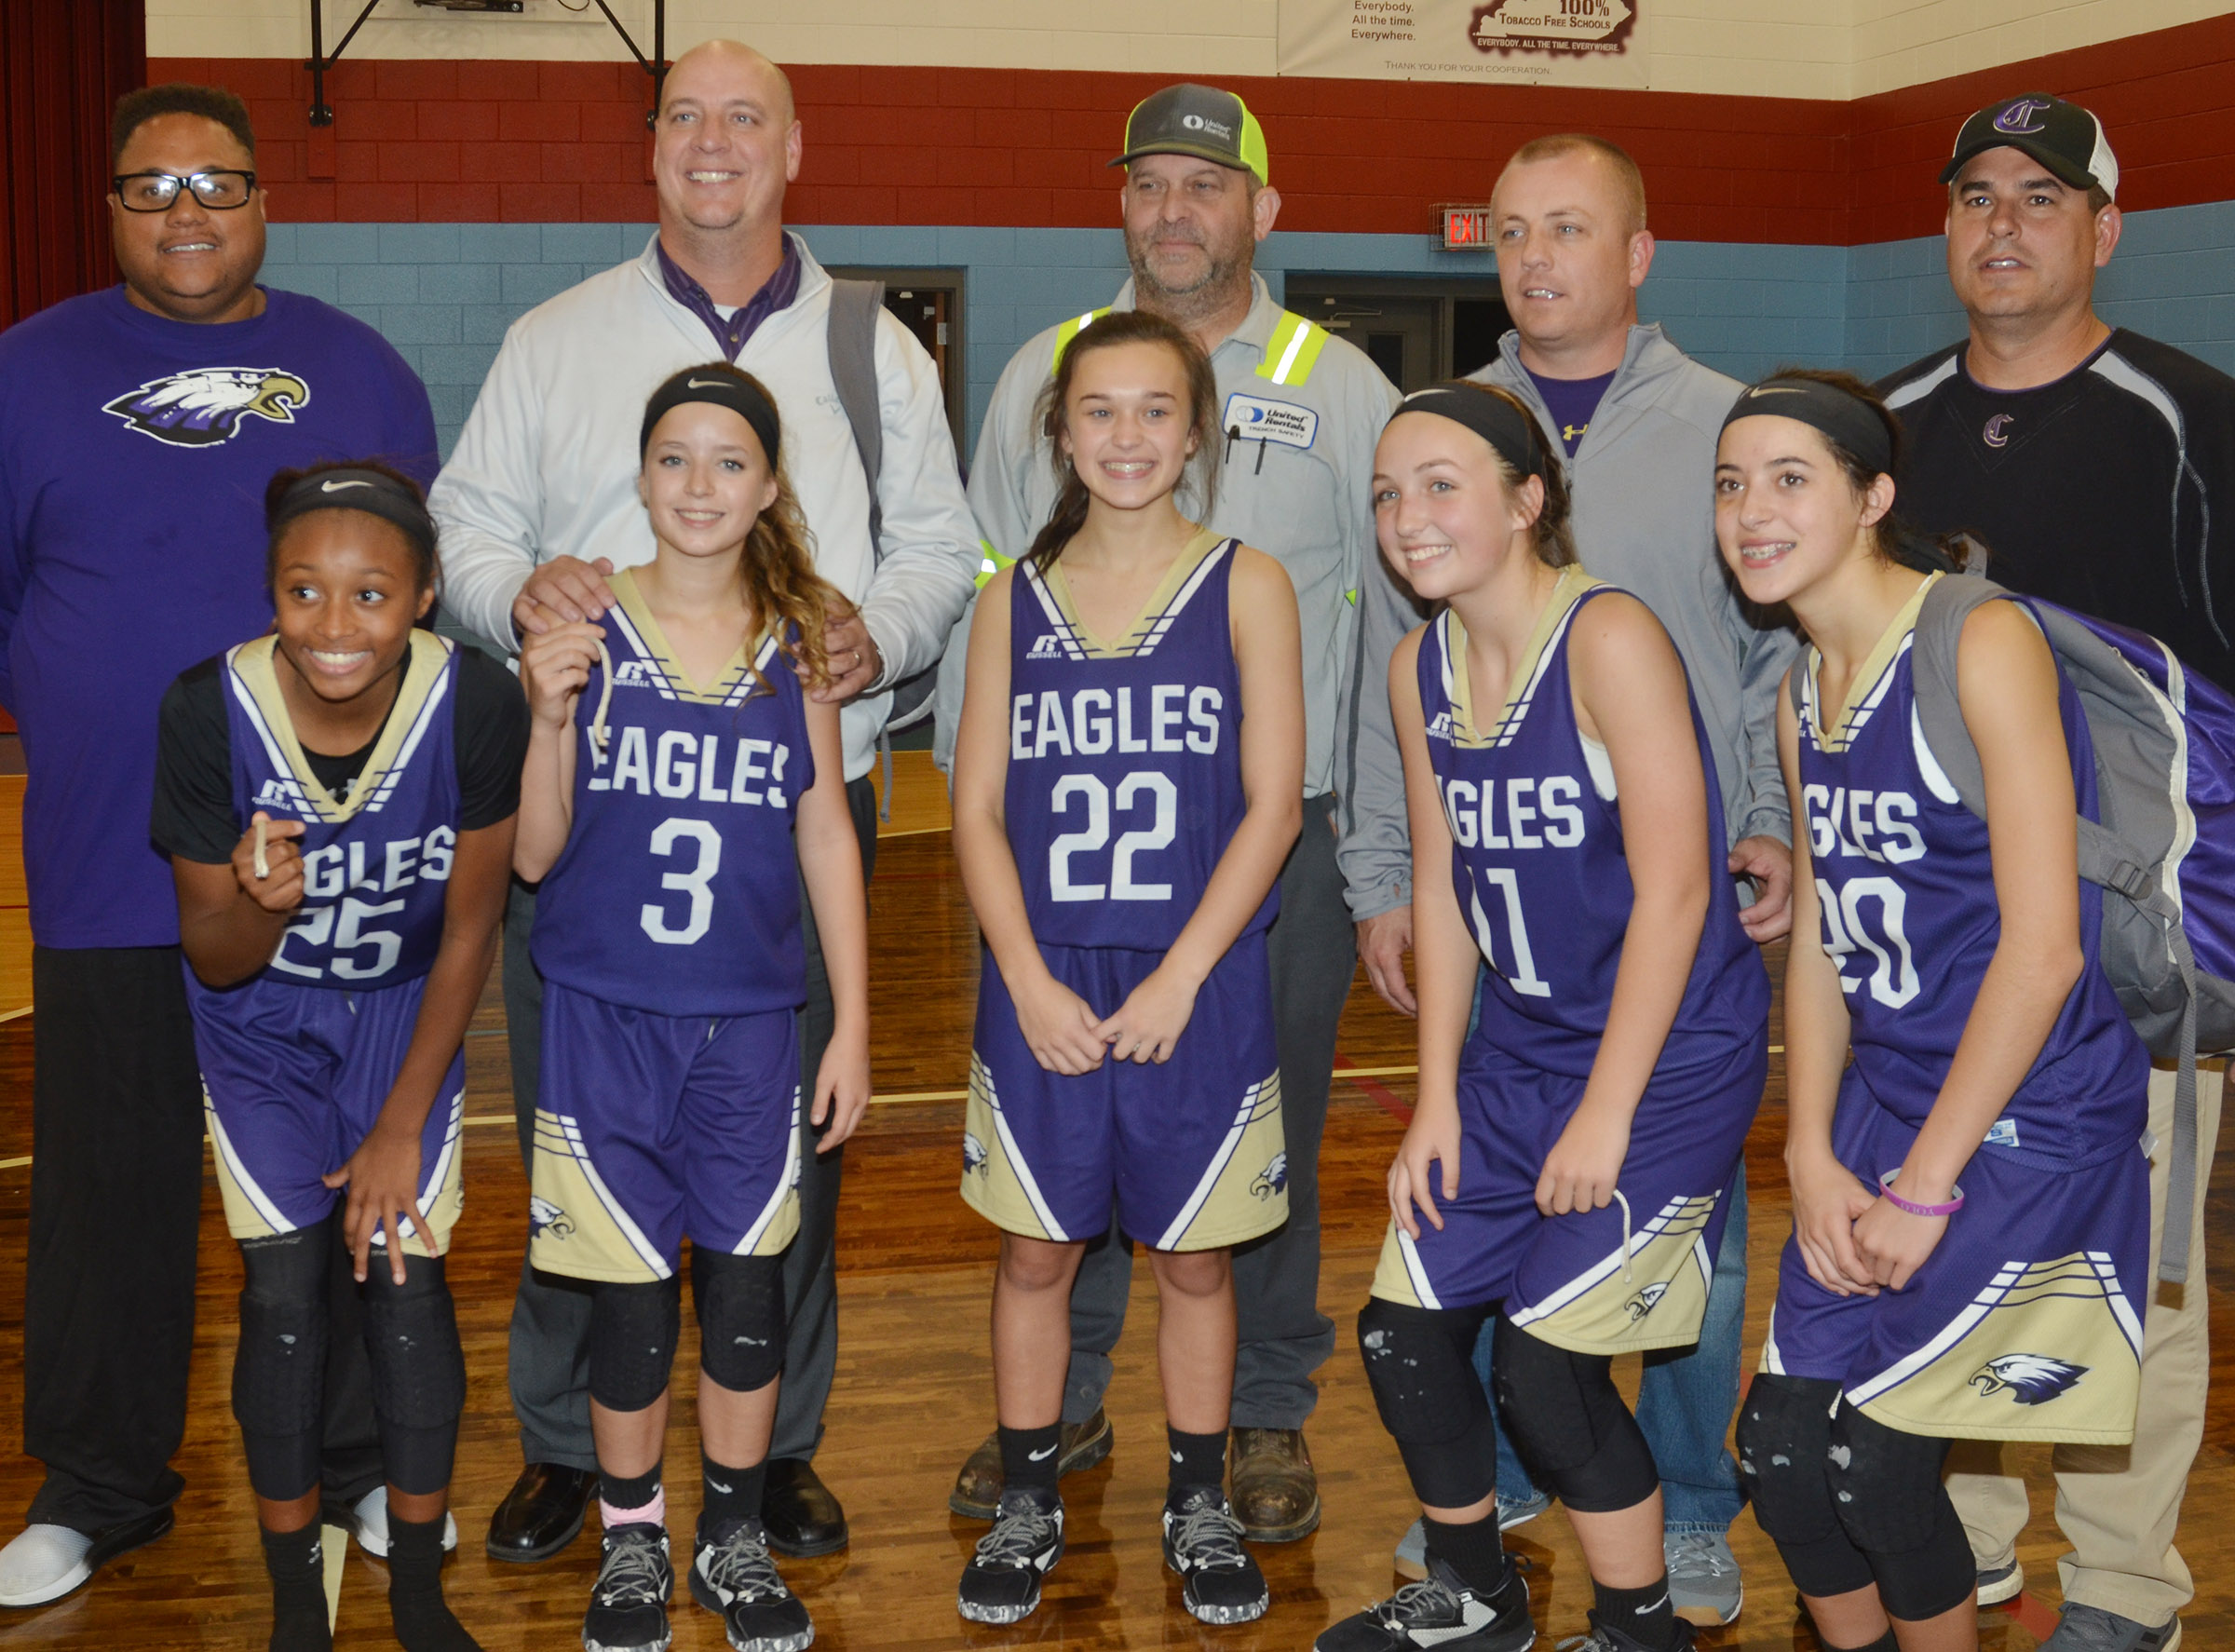 Campbellsville Middle School girls' eighth-grade basketball team recently won its first Central Kentucky Middle School Athletic Conference tournament championship title in 20 years. Above, eighth-grade players pose with their fathers. From left are Bri Gowdy and her father Bronson, Rylee Petett and her father David, Tayler Thompson and her father Greg, Lainey Watson and her father Jeff and Kaylyn Smith and her father Kirby.